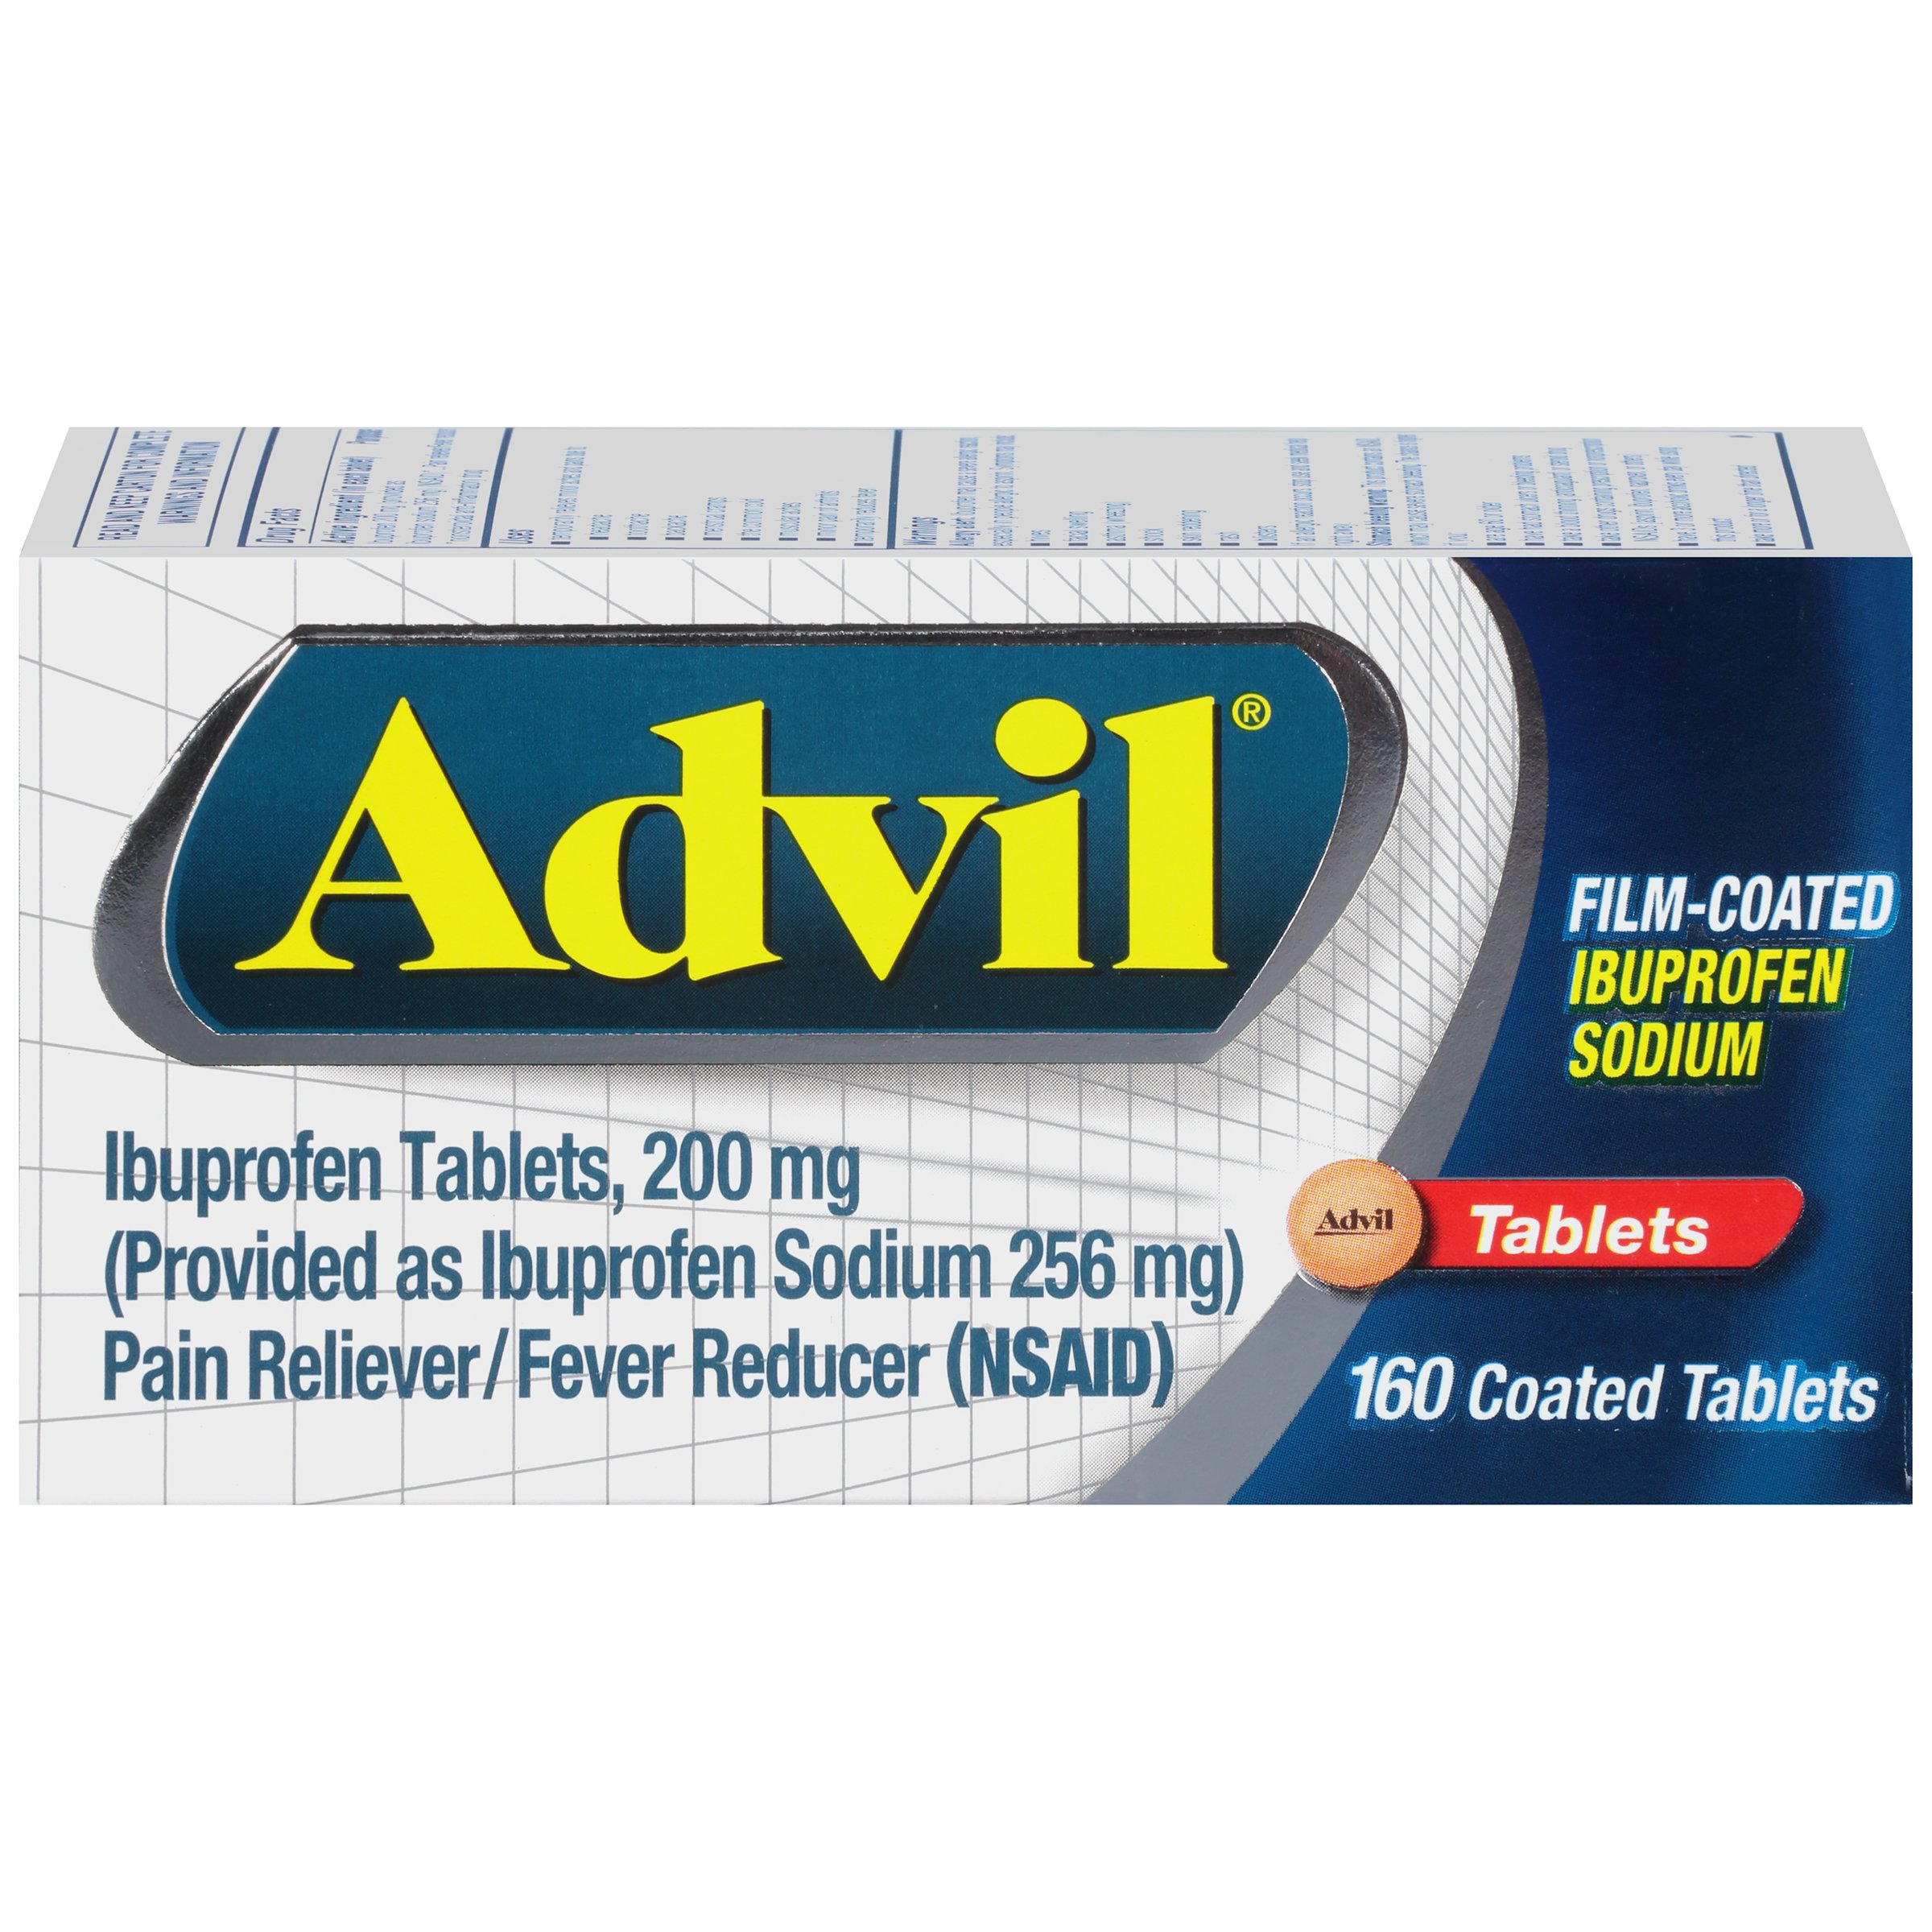 Advil Film-Coated Temporary Pain Reliever/Fever Reducer Tablet, 200mg Ibuprofen, 160 Count by Advil